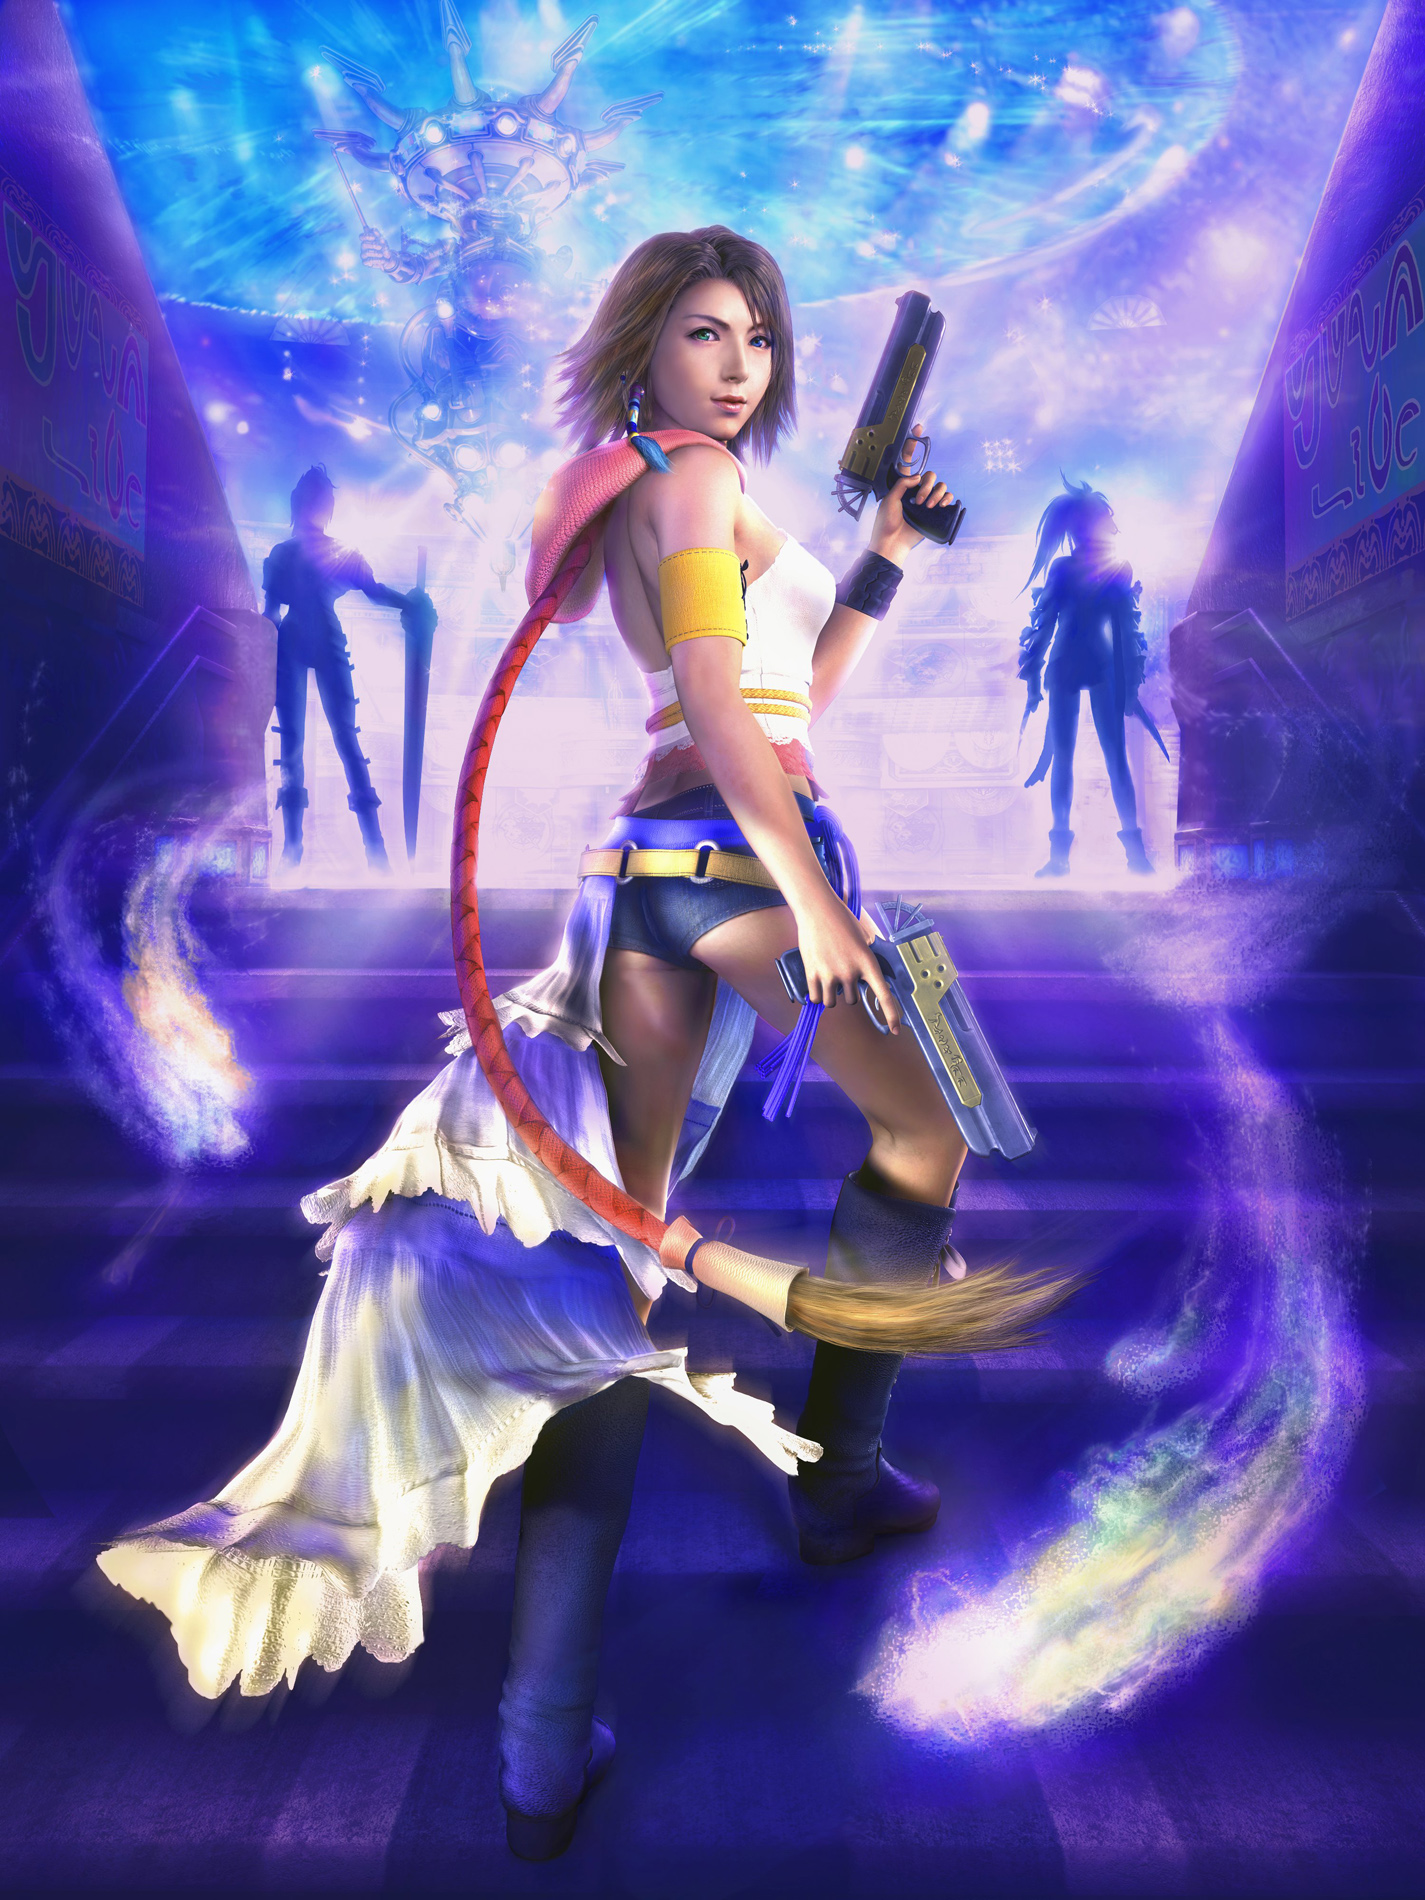 Final Fantasy X 2 images Pictures from FFX 2 HD wallpaper 1425x1900